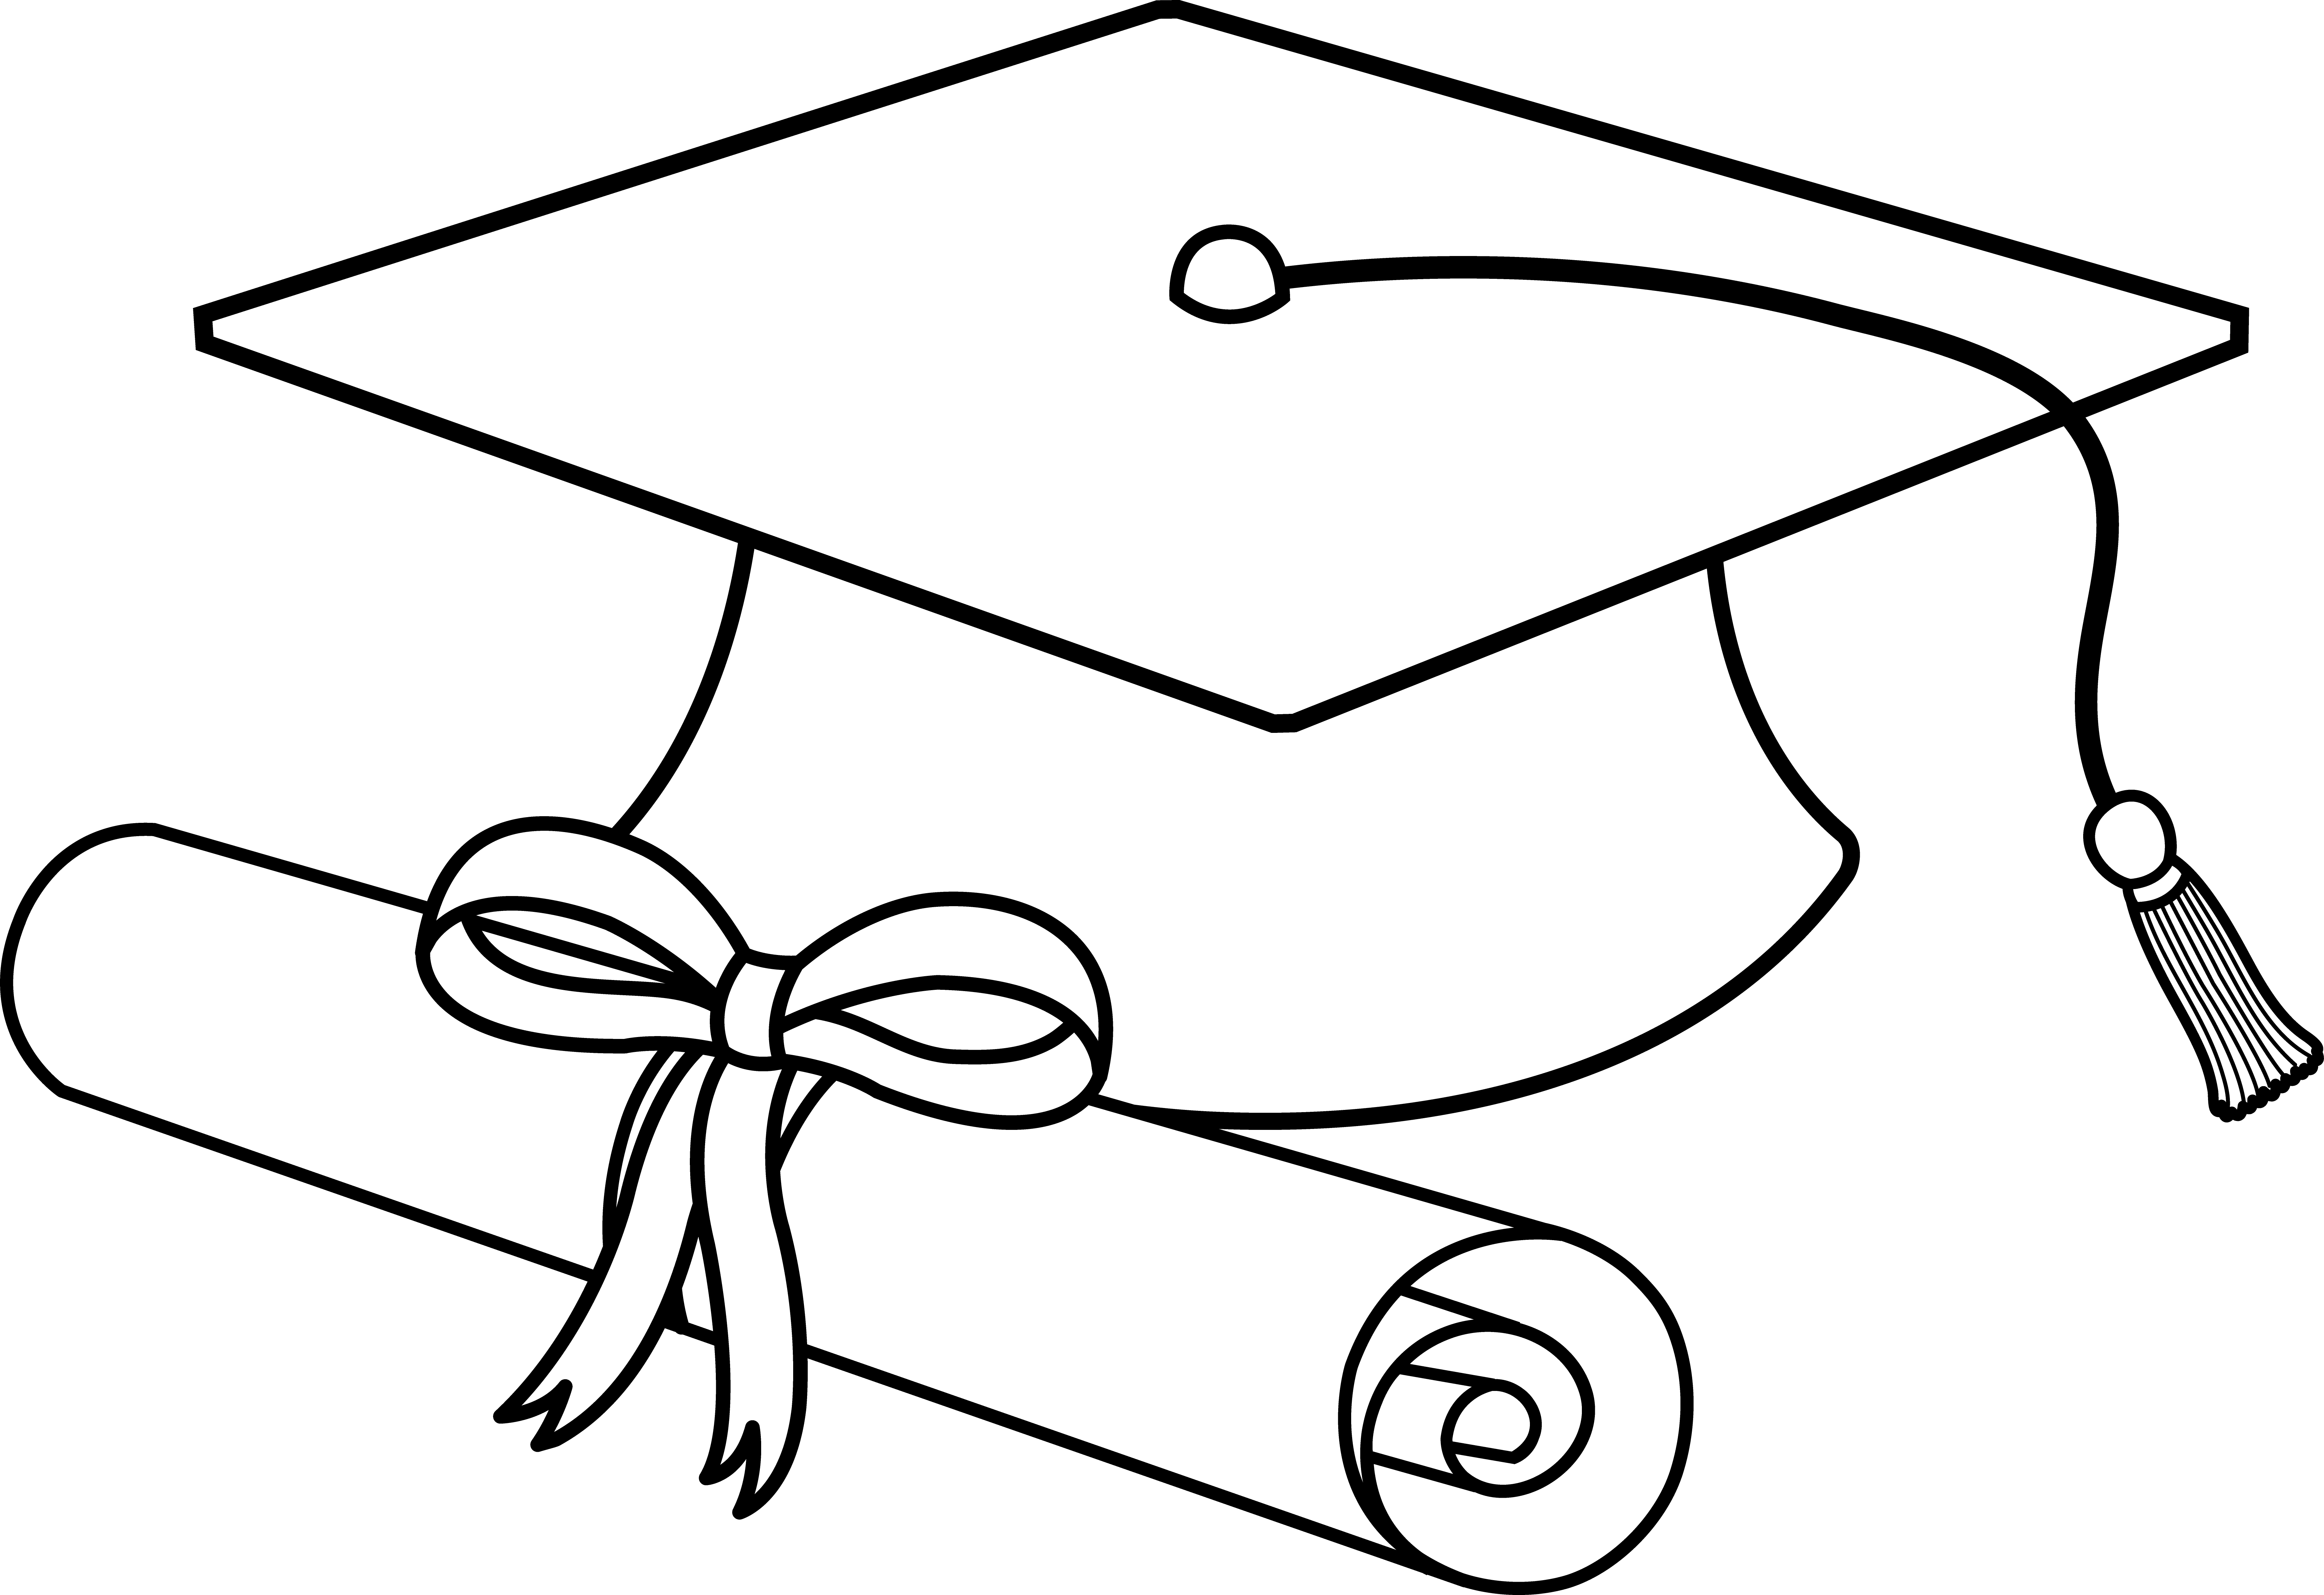 7334x5034 Flying Graduation Caps Clip Art Graduation Cap Line Art